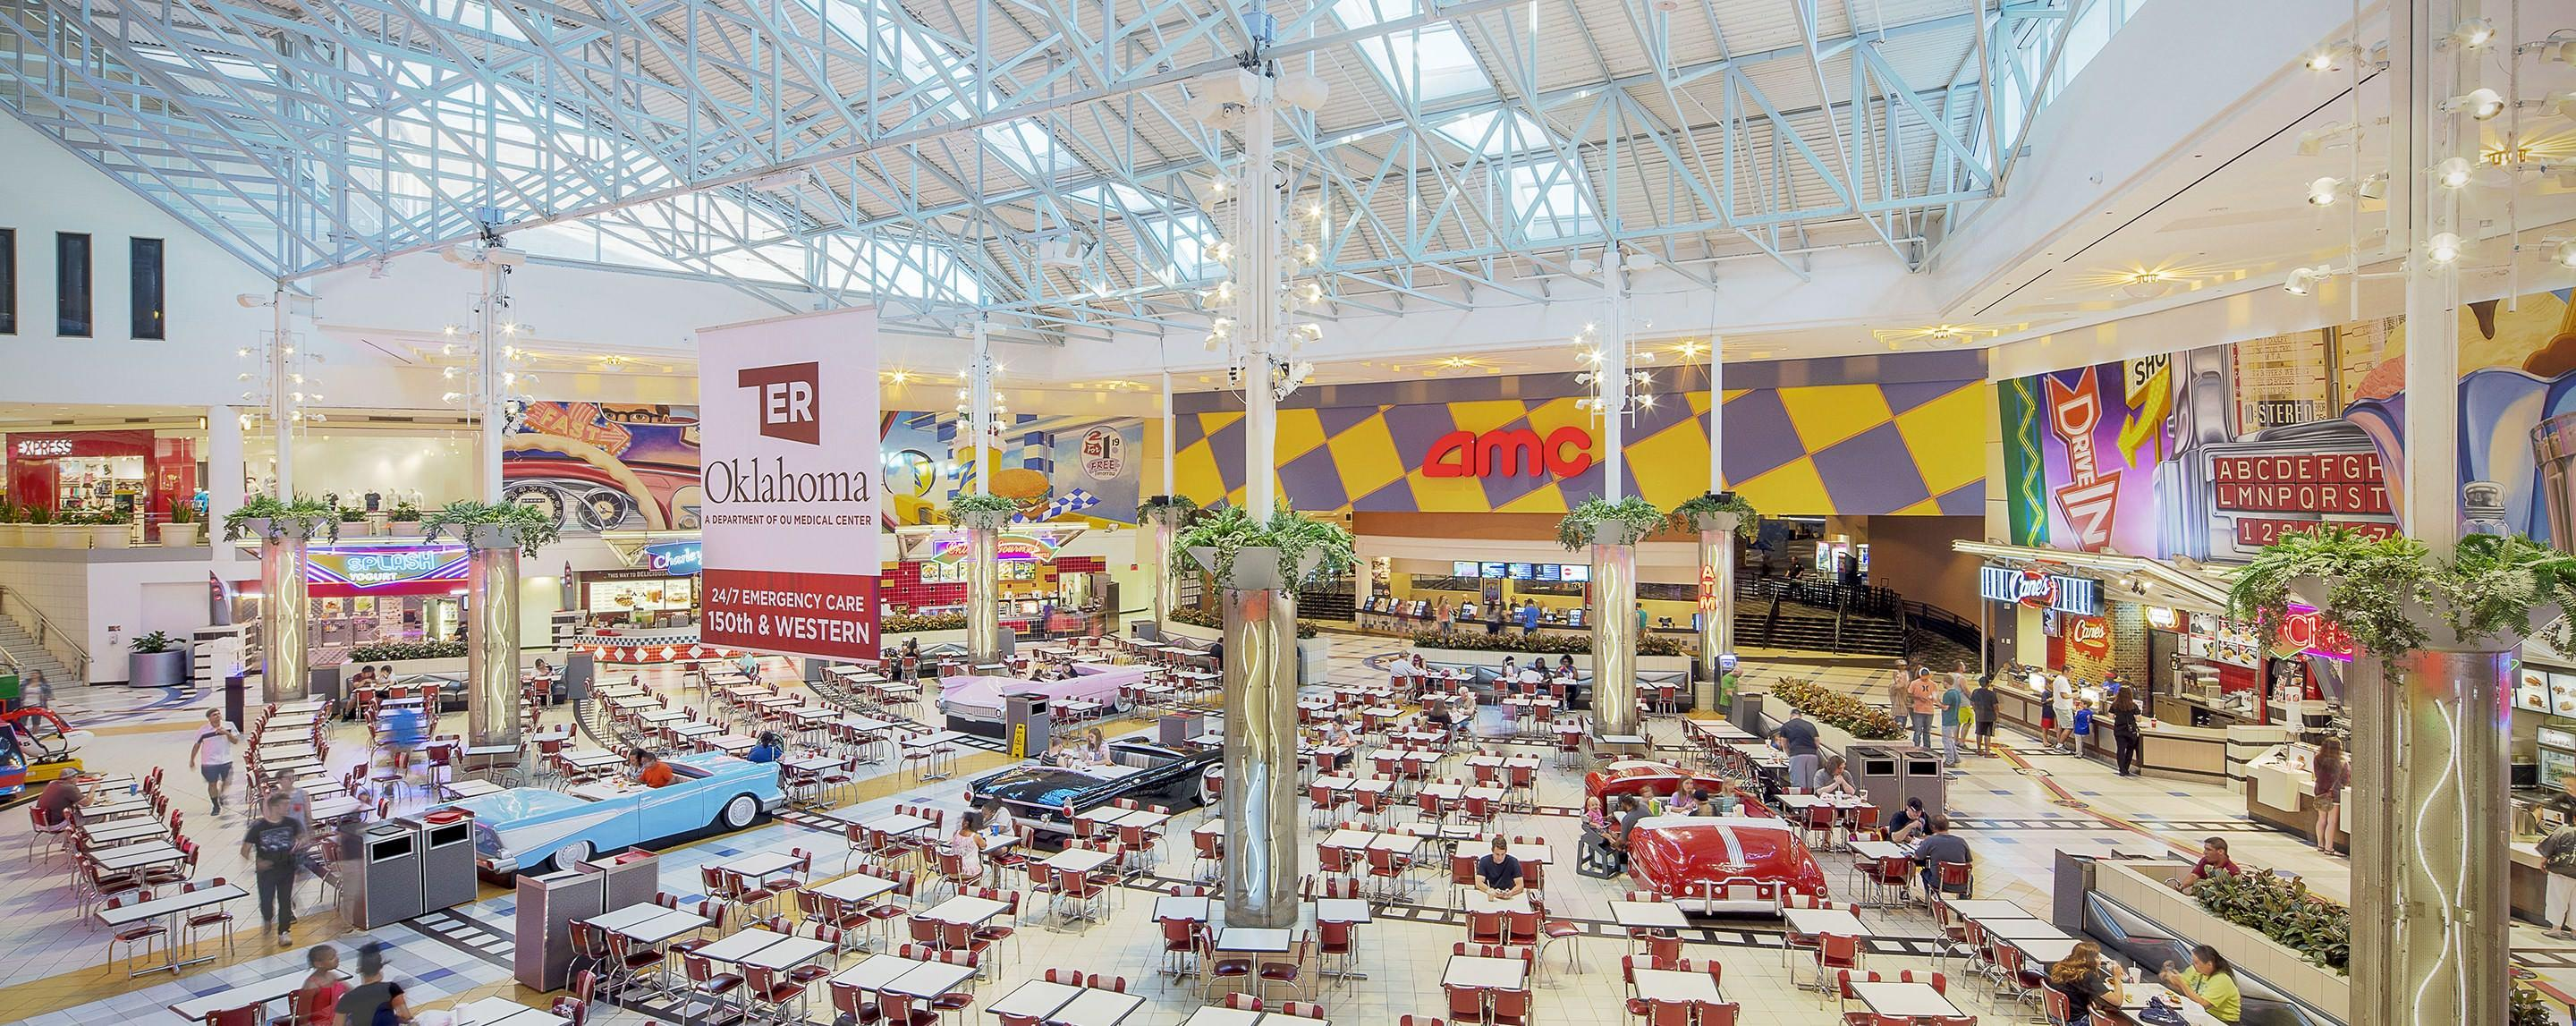 2880x1147 Quail Springs Mall Map on lakeland square mall map, eastridge mall map, augusta mall map, west county mall map, oakwood mall map, providence place mall map, penn square mall map, north point mall map, montgomery mall map, towson mall map, oglethorpe mall map, rivertown mall map, orange park mall map, greenville mall map, northtown mall map, coral ridge mall map, spring hill mall map, sooner mall map, west town mall map, ocean county mall map,